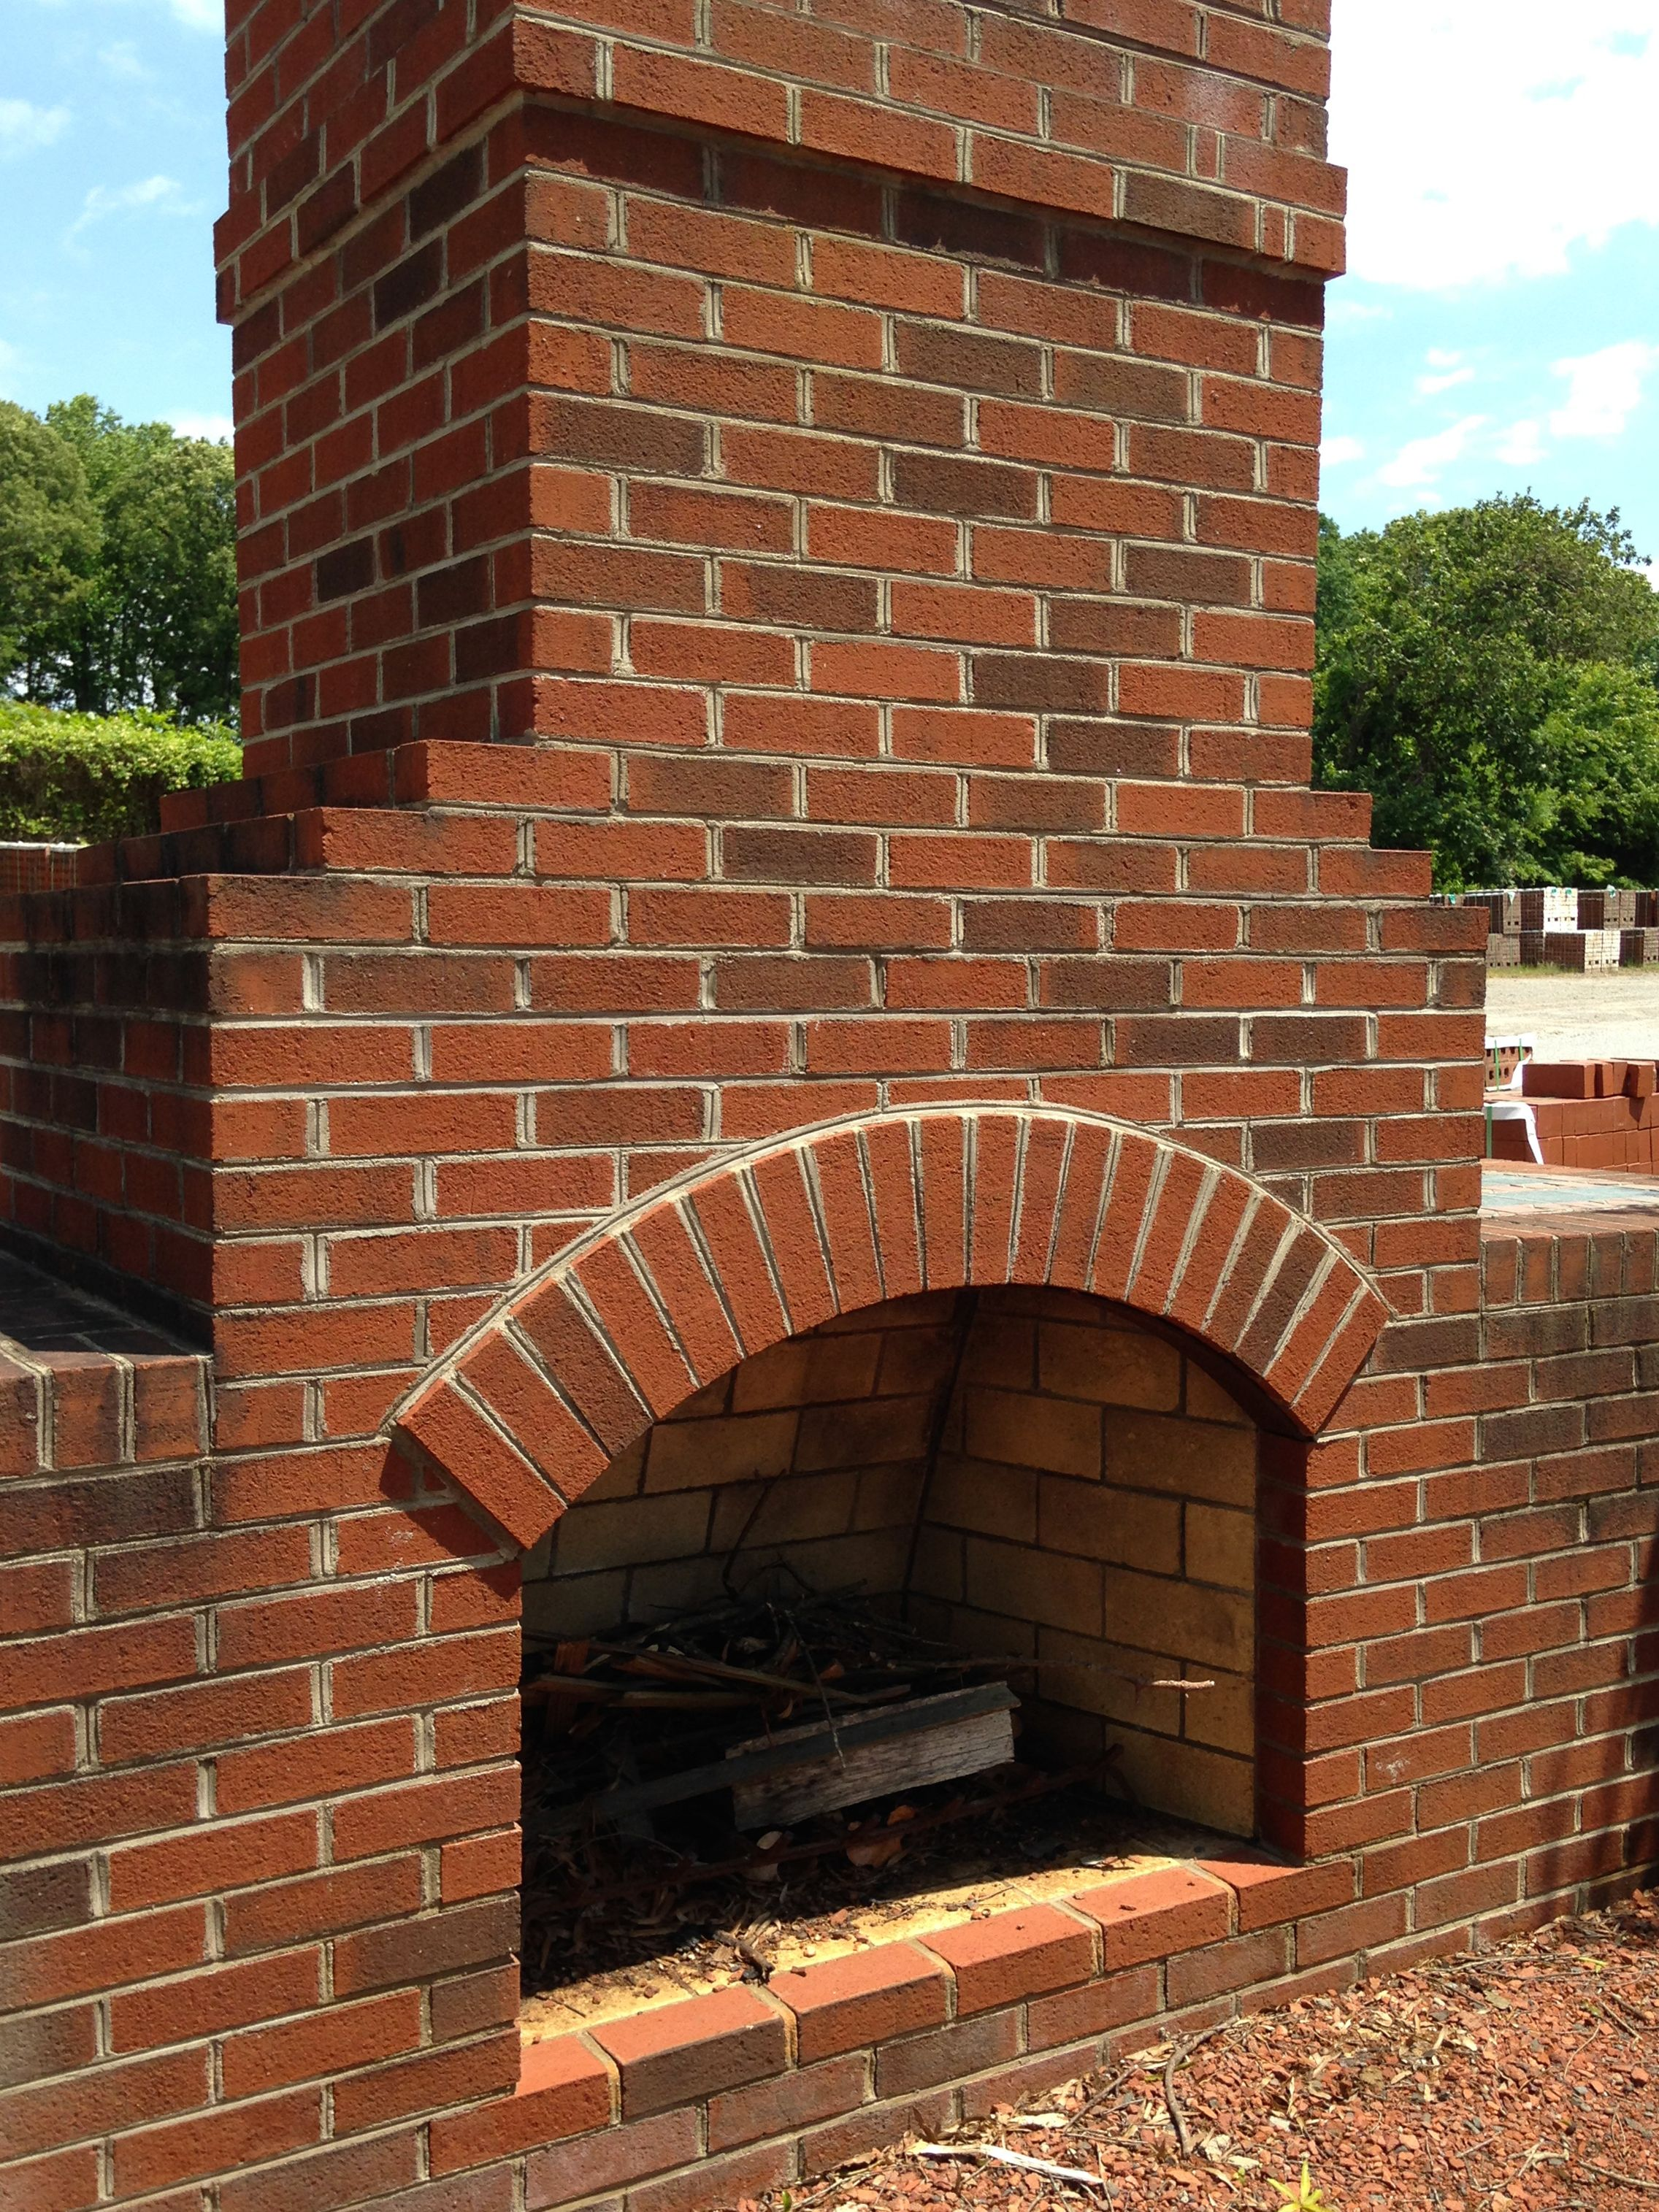 A Classic Outdoor Fireplace Constructed Out Of Old Colonial Style Brick With A Light Grey Mortar